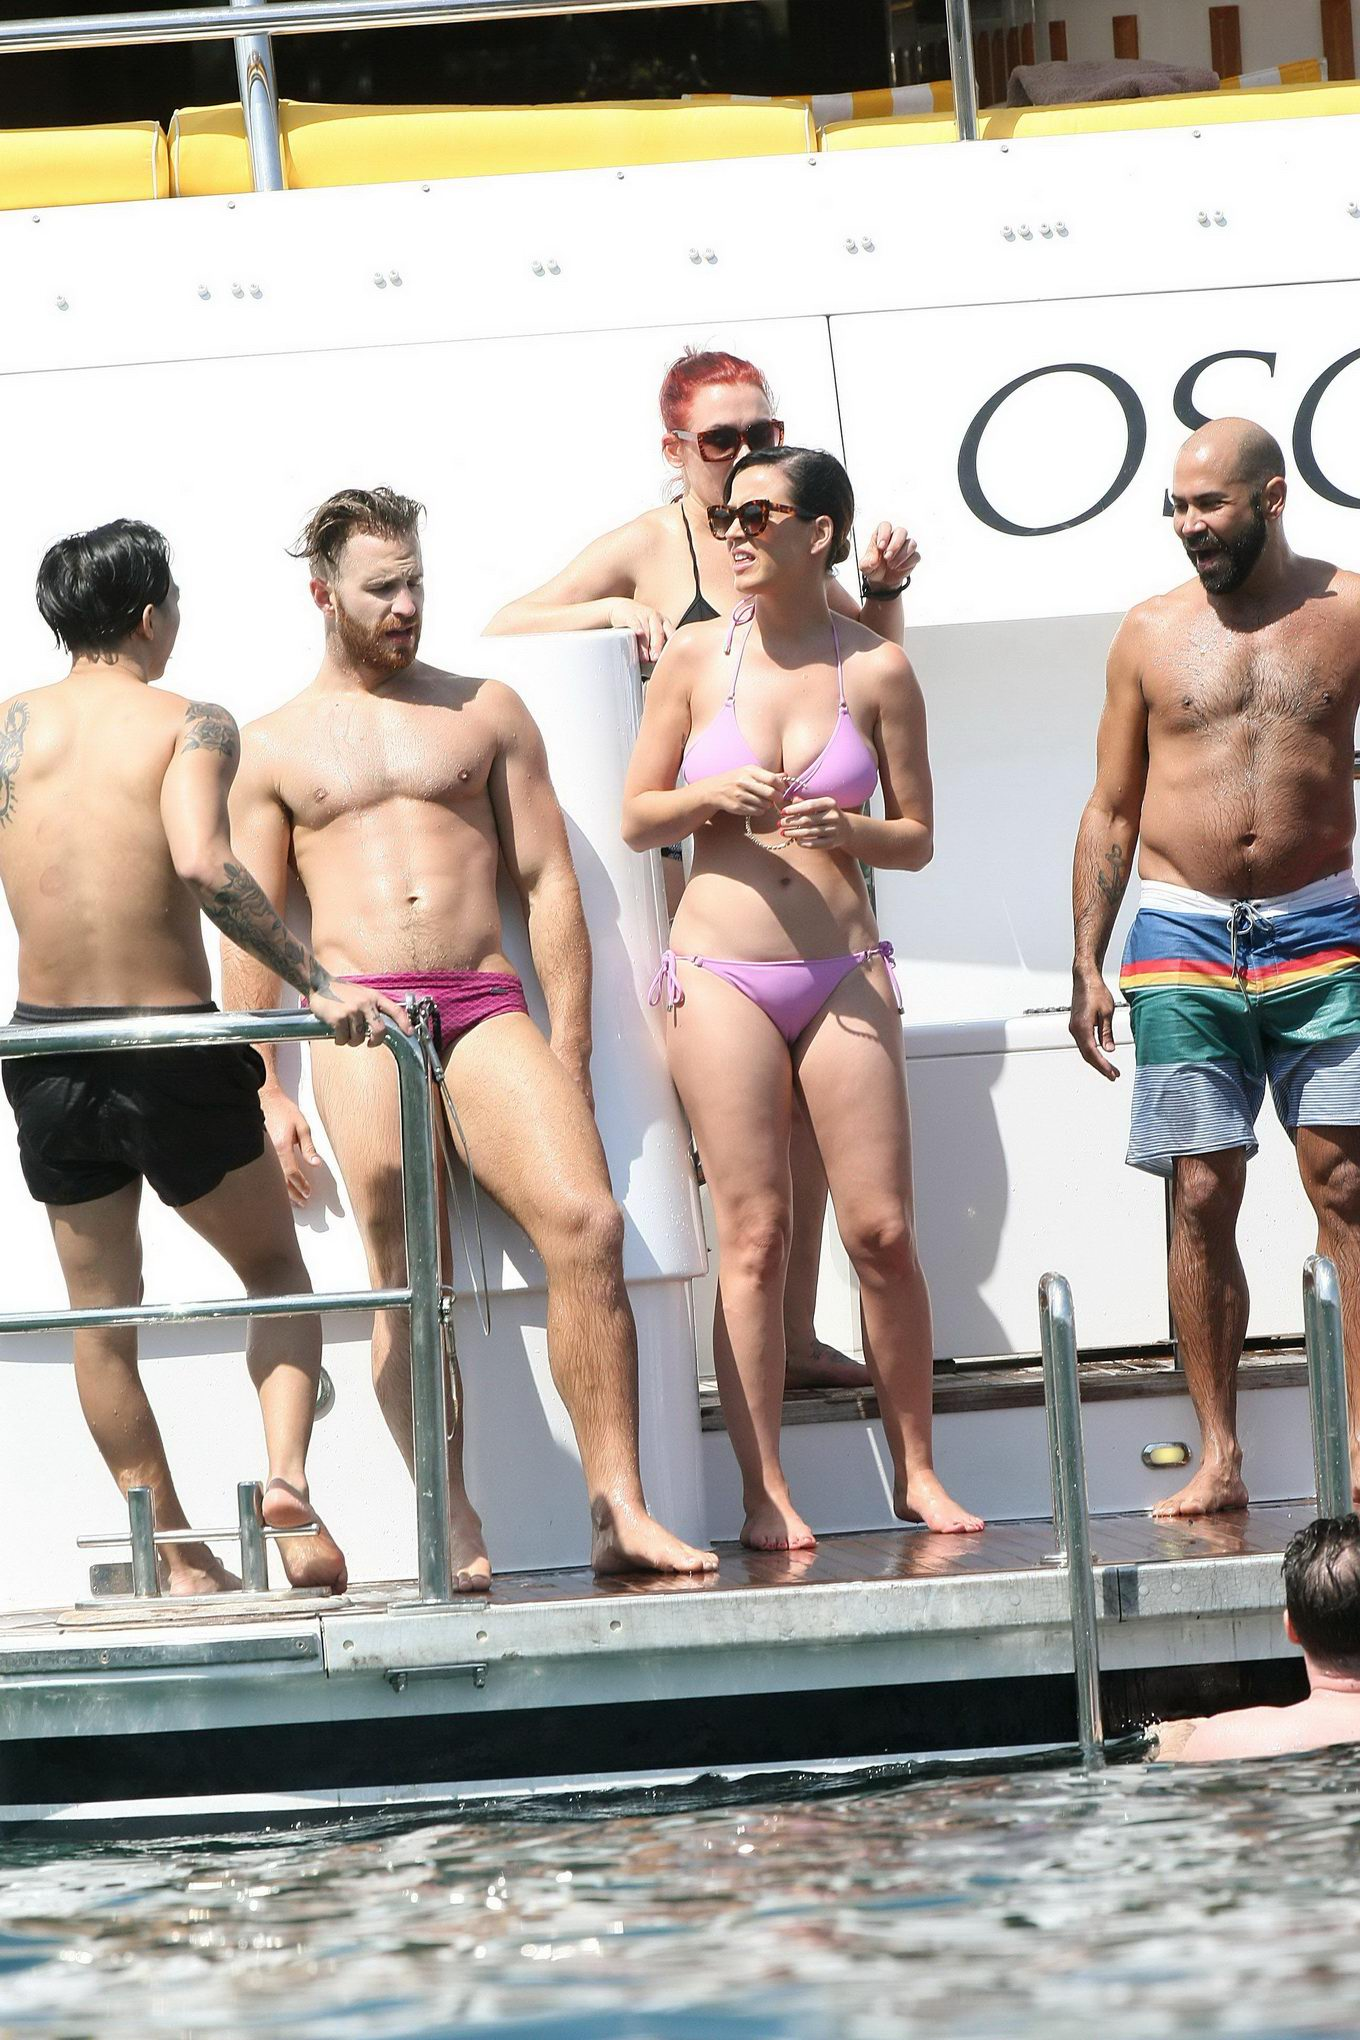 perry showing off her bikini body and camel toe on a yacht in sydney